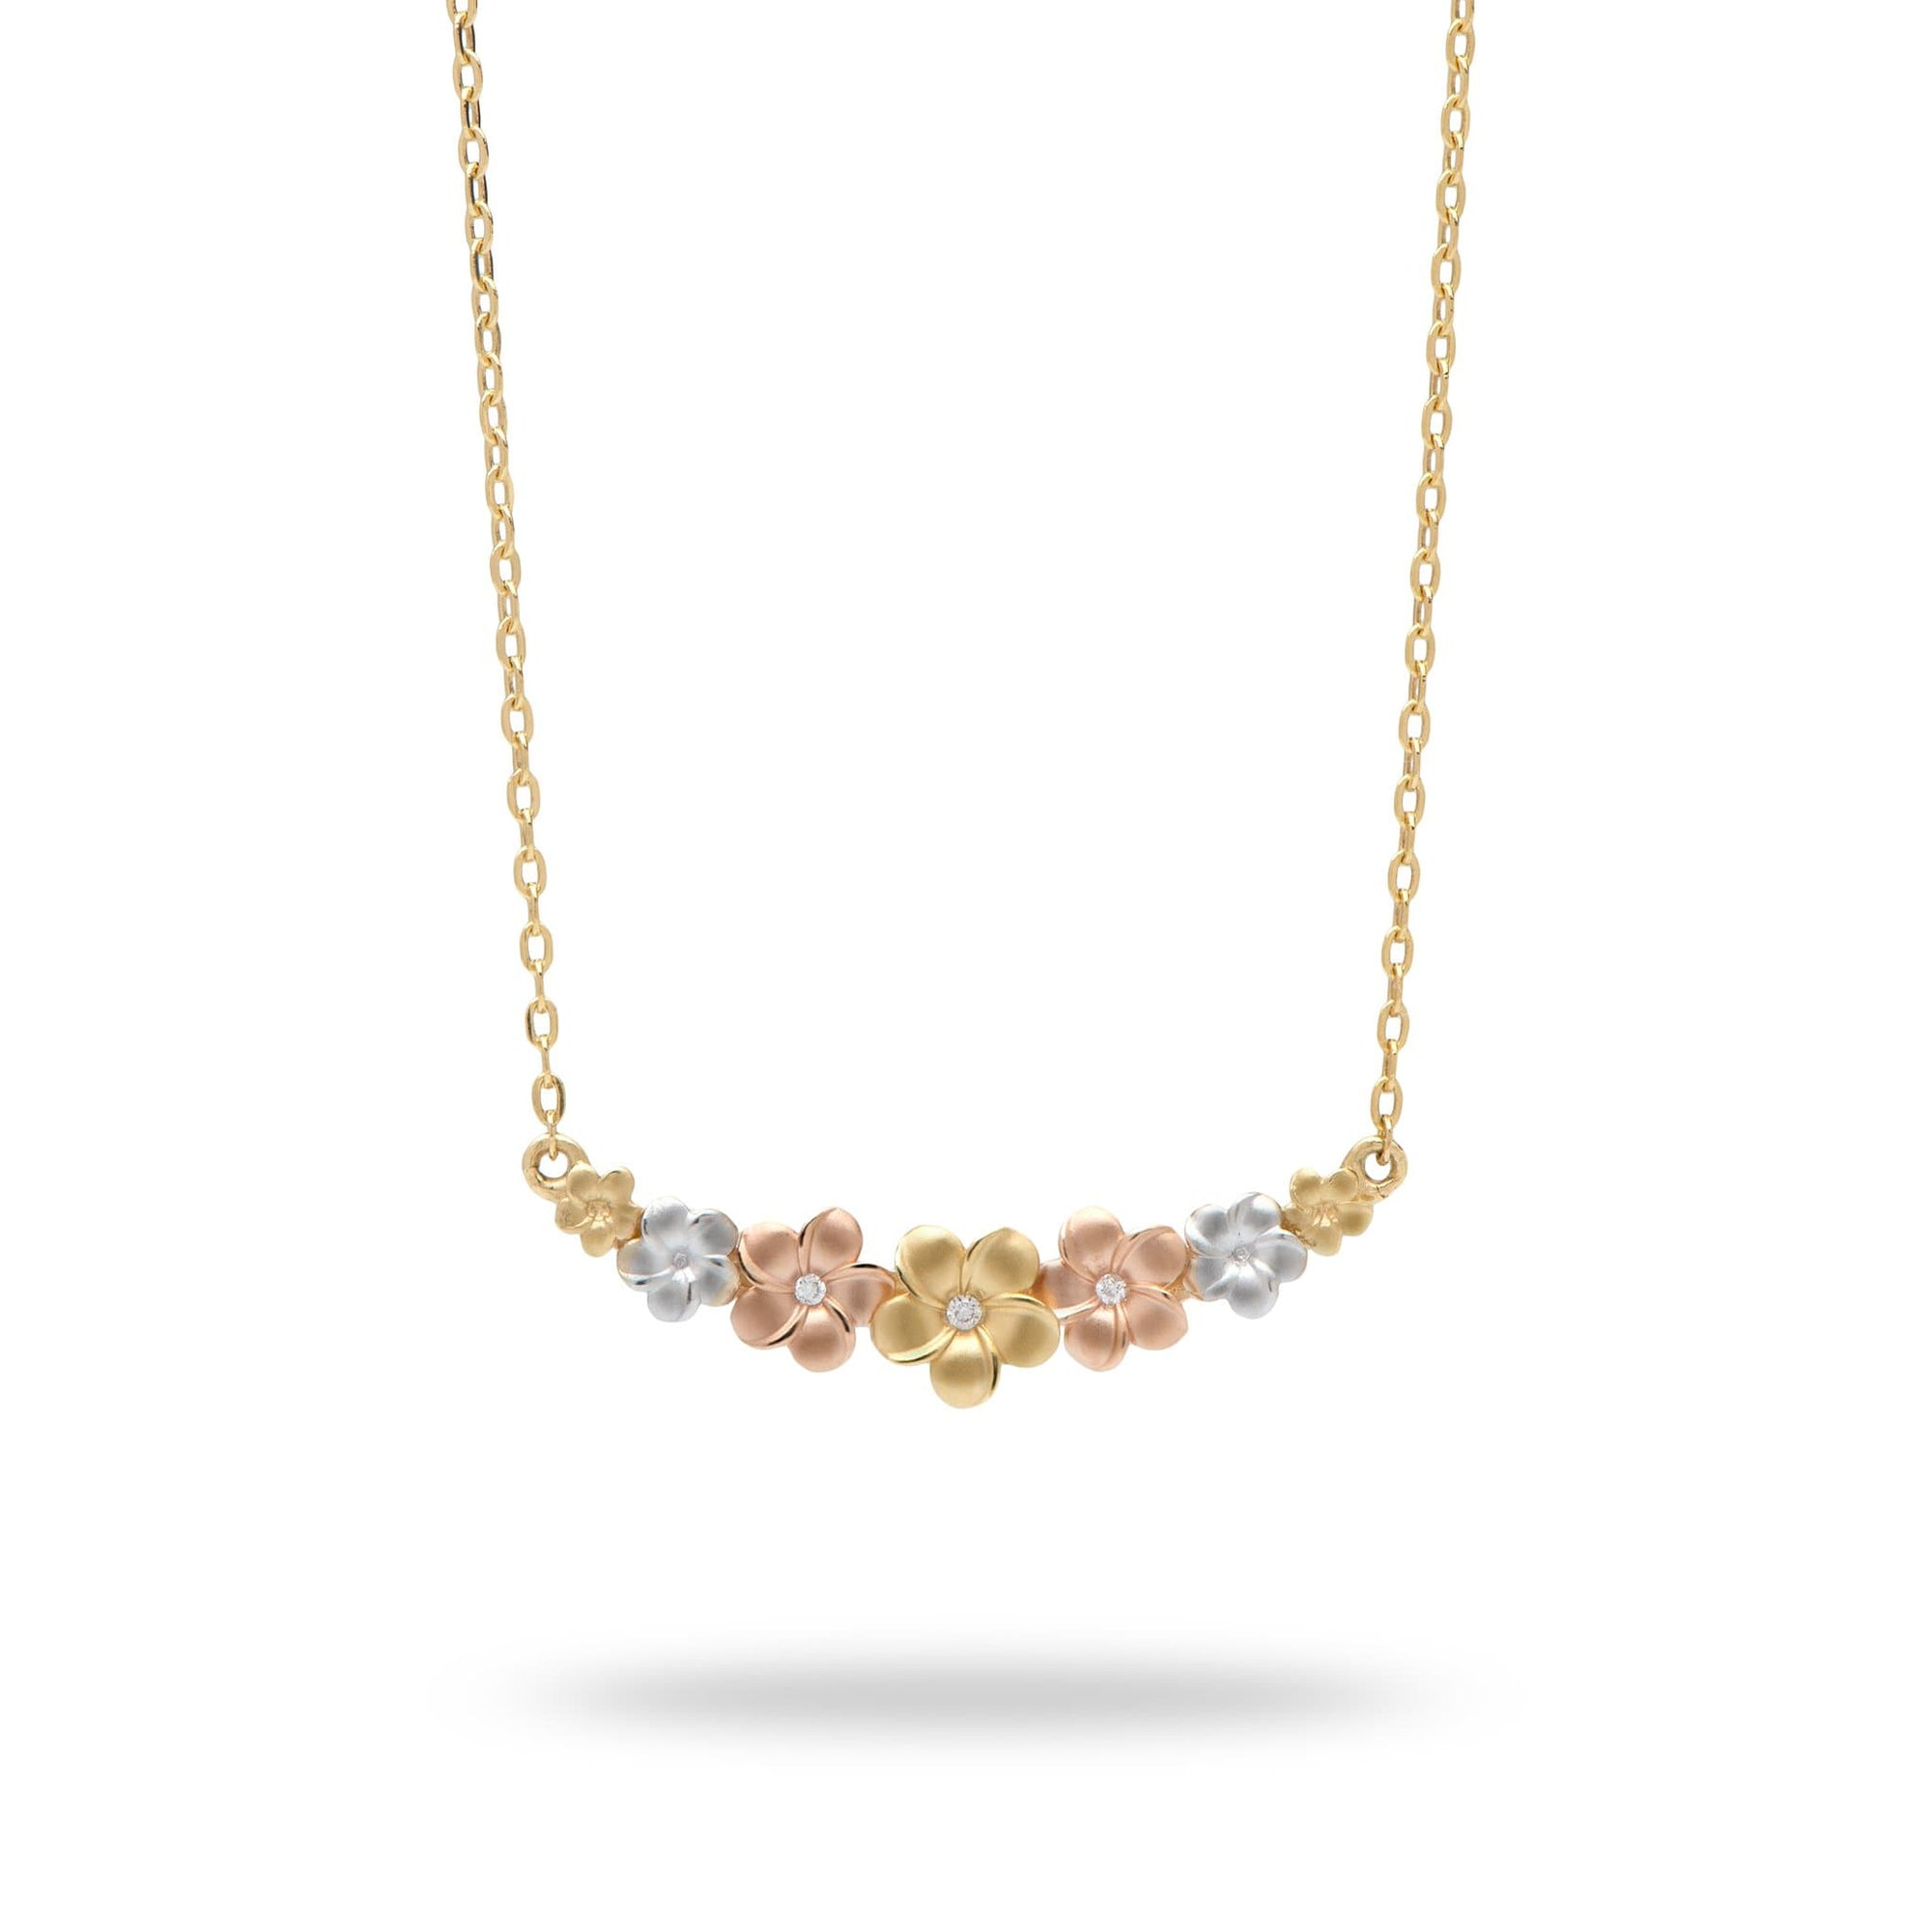 Plumeria Necklace in 14K Tri-Color Gold With Diamonds - Maui Divers Jewelry